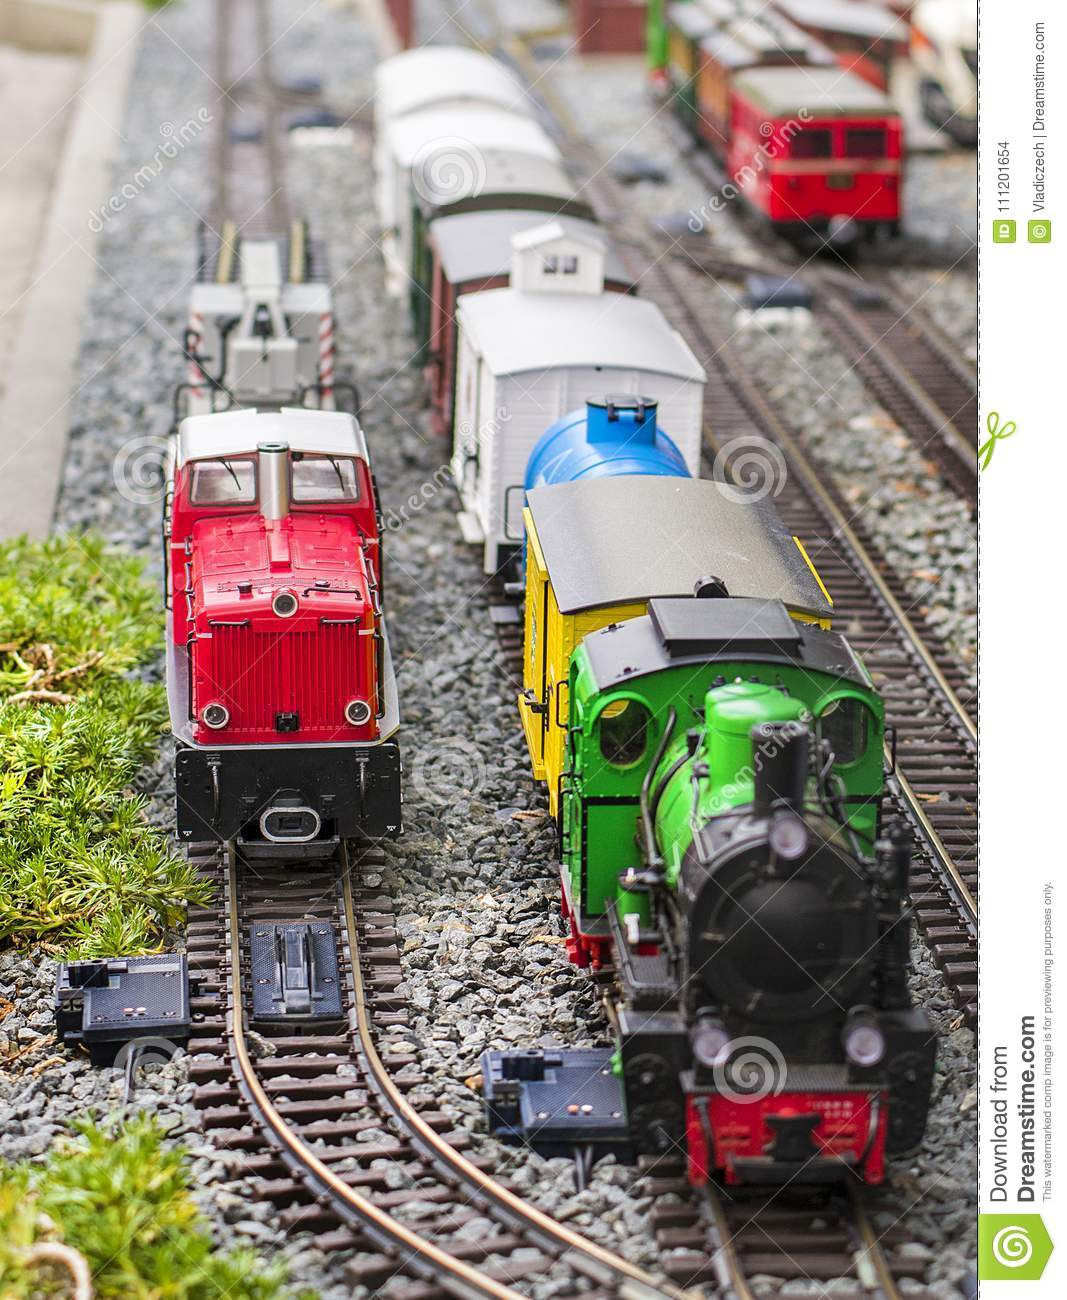 Set of red electric model railway locomotive and layout with a station and whole scene with features.